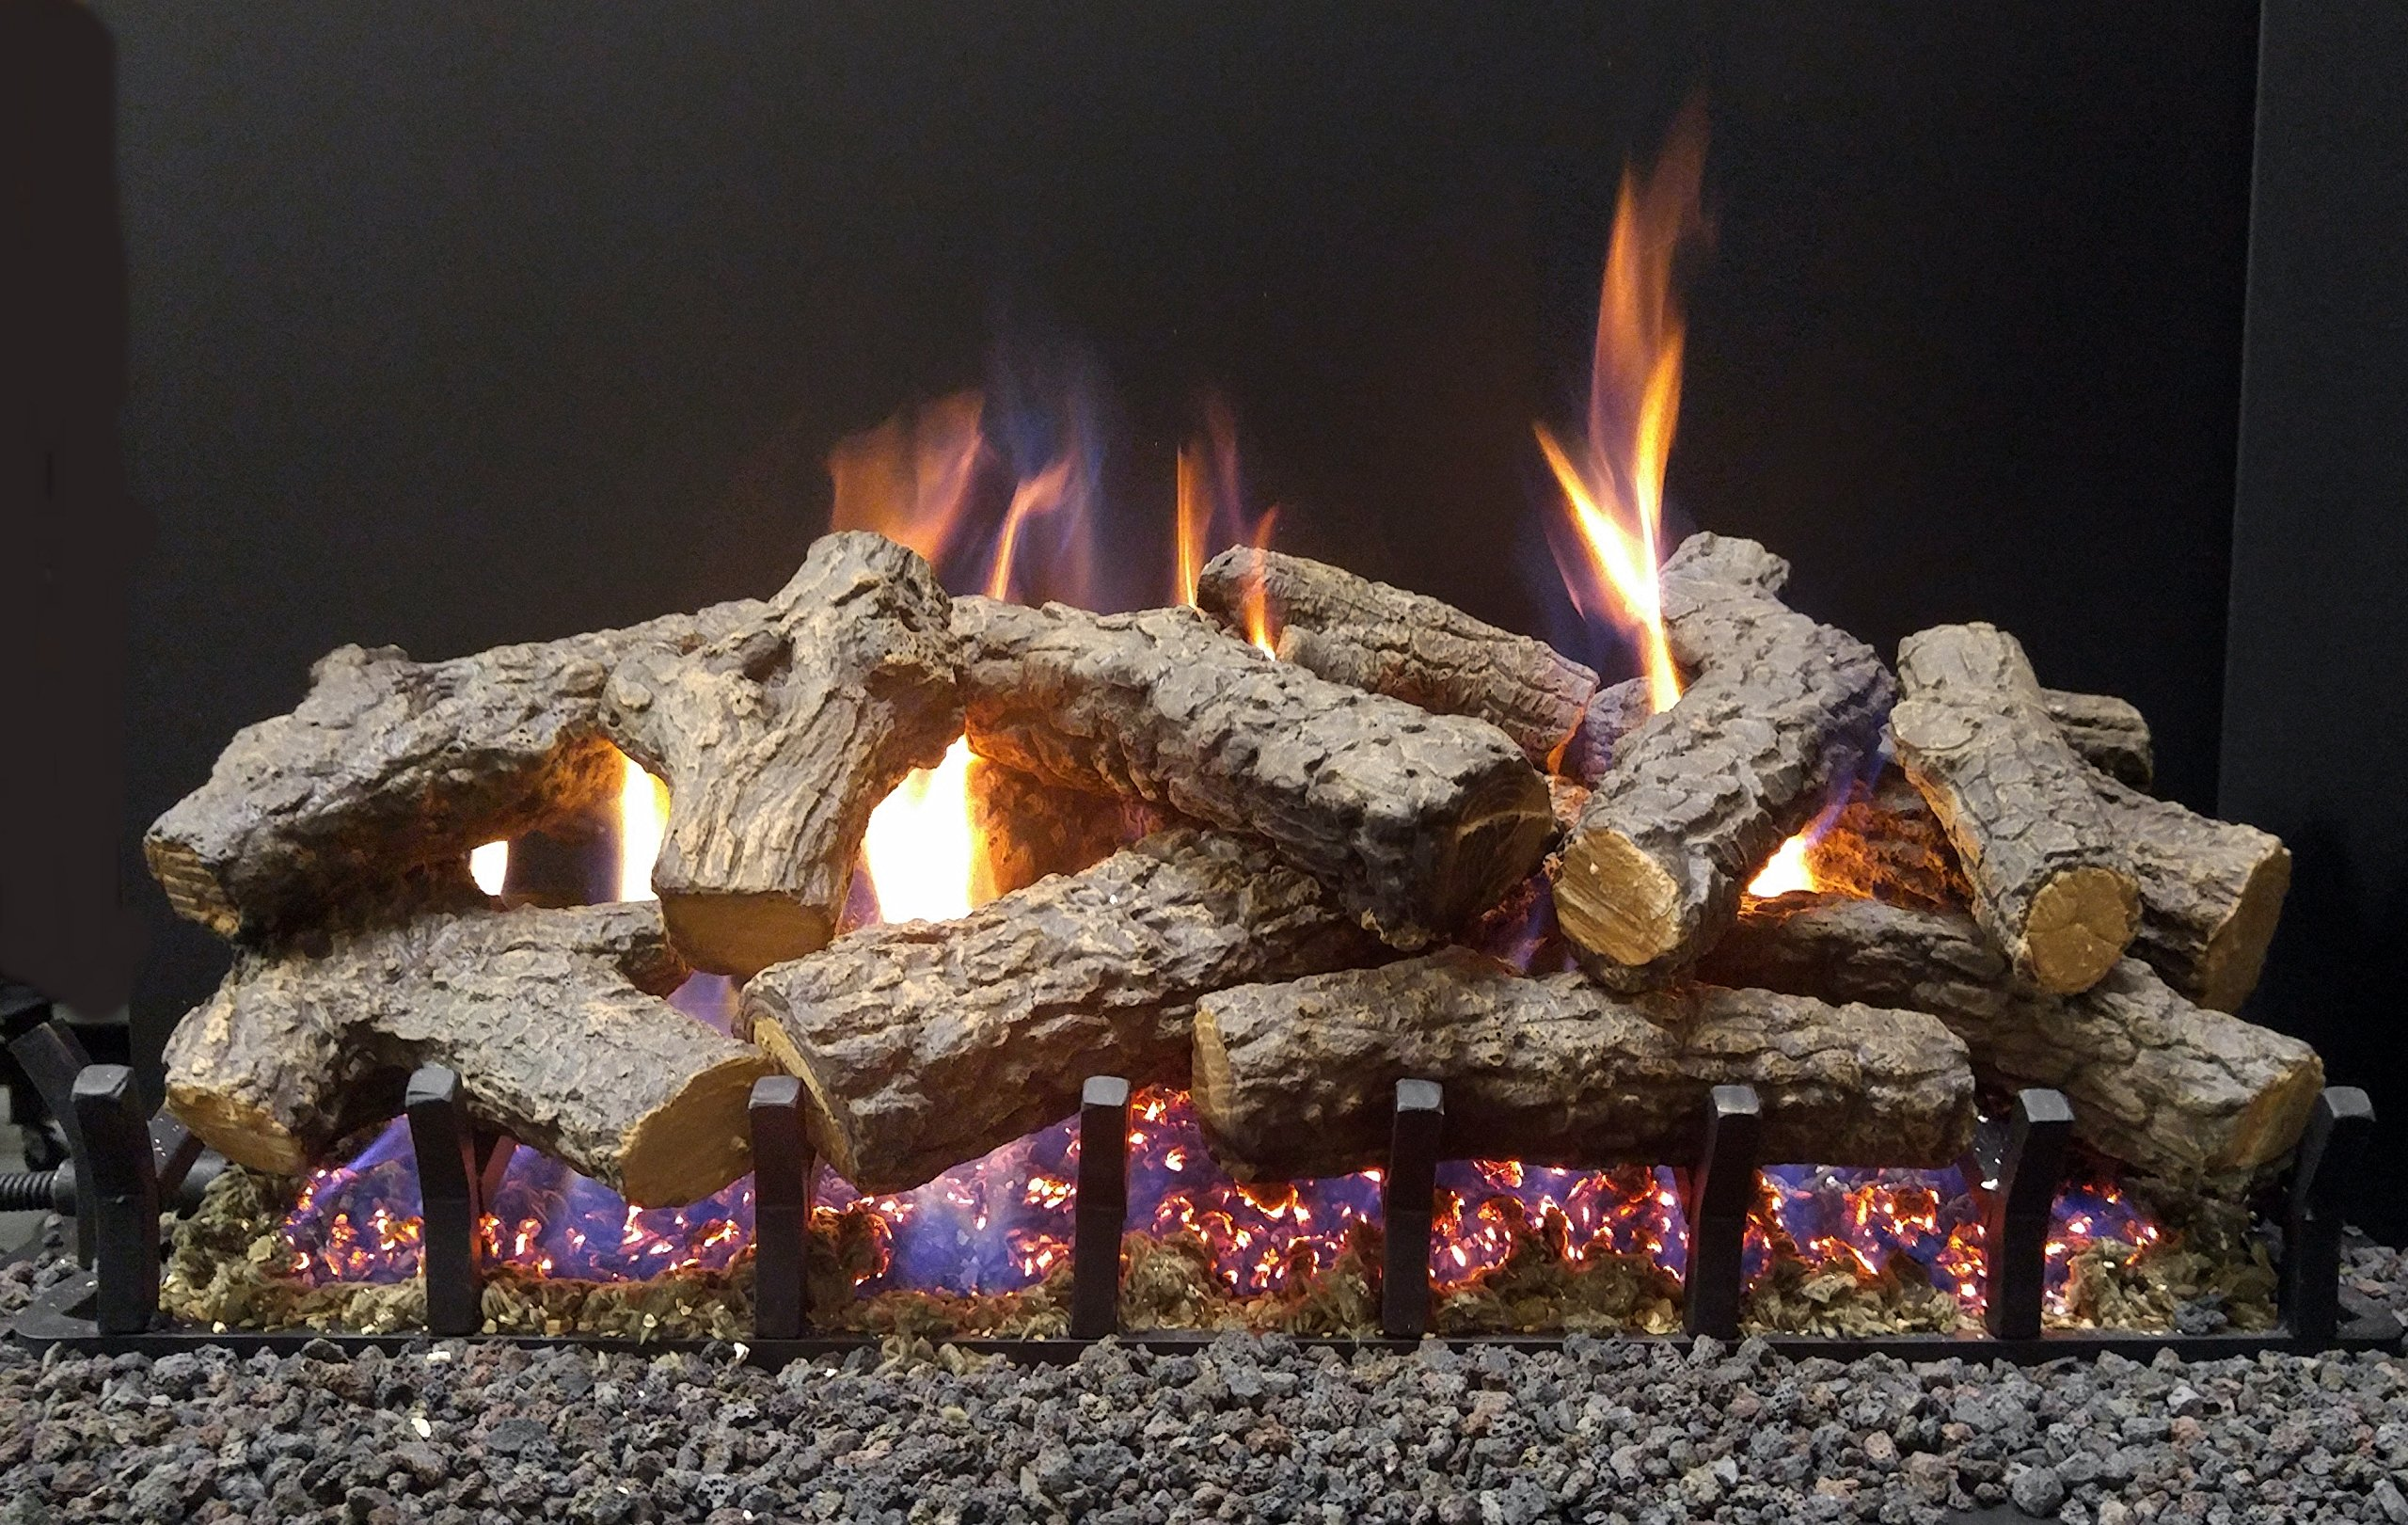 for burning charming gas fireplace of embers with fireplaces ceramic and fire logs x photo flames